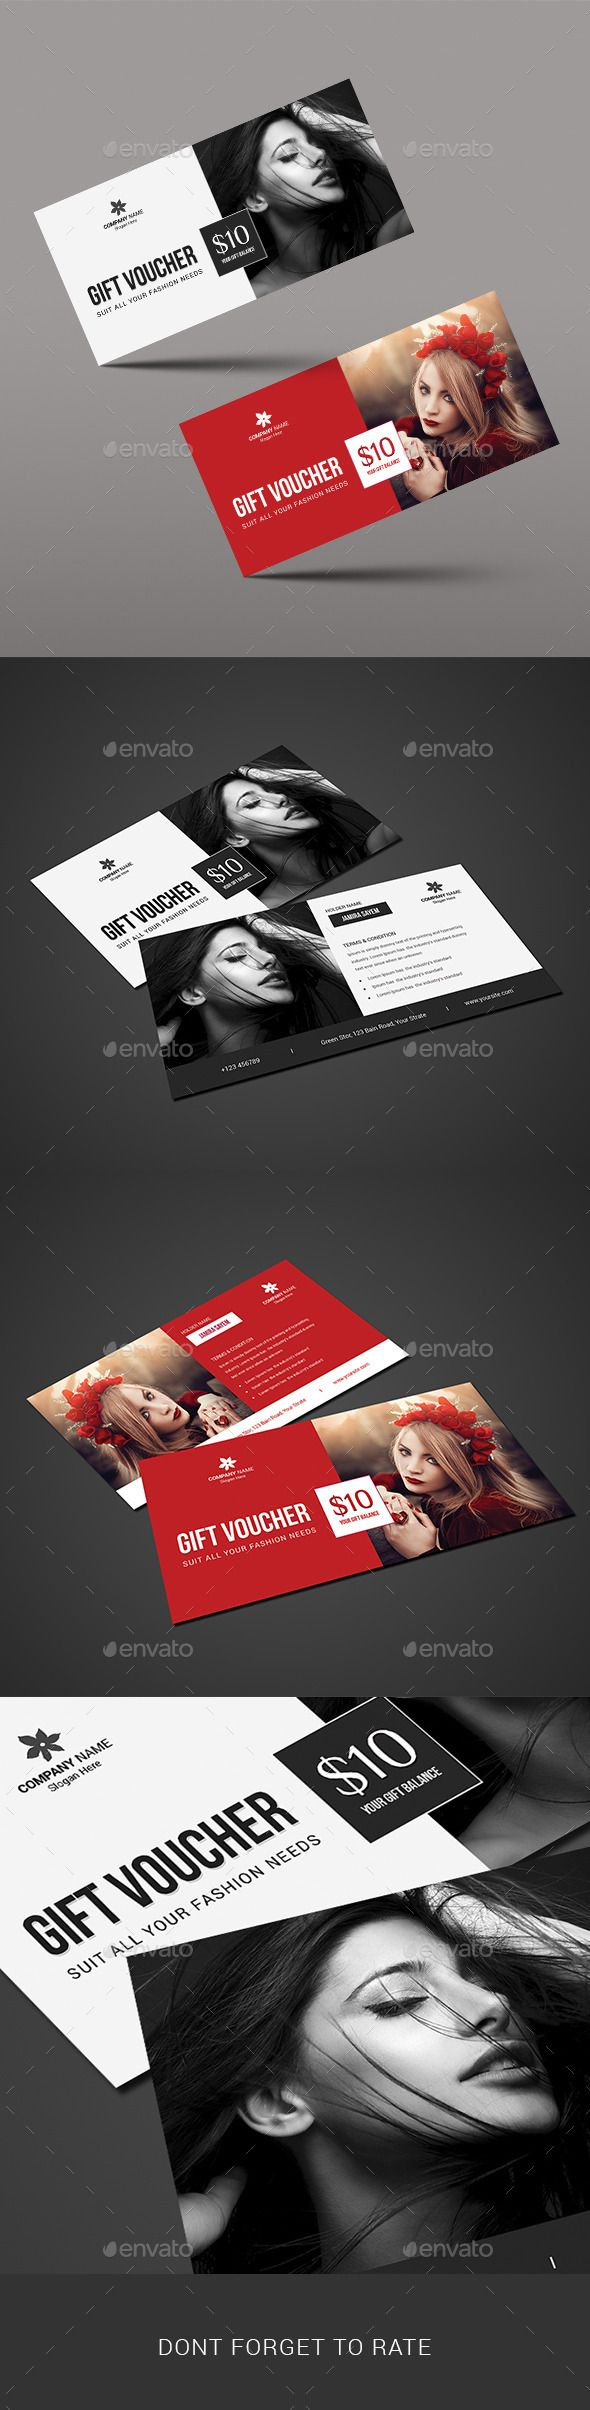 Beauty Fashion Gift Voucher Template #design Download: http://graphicriver.net/item/beauty-fashion-gift-voucher/11315751?ref=ksioks